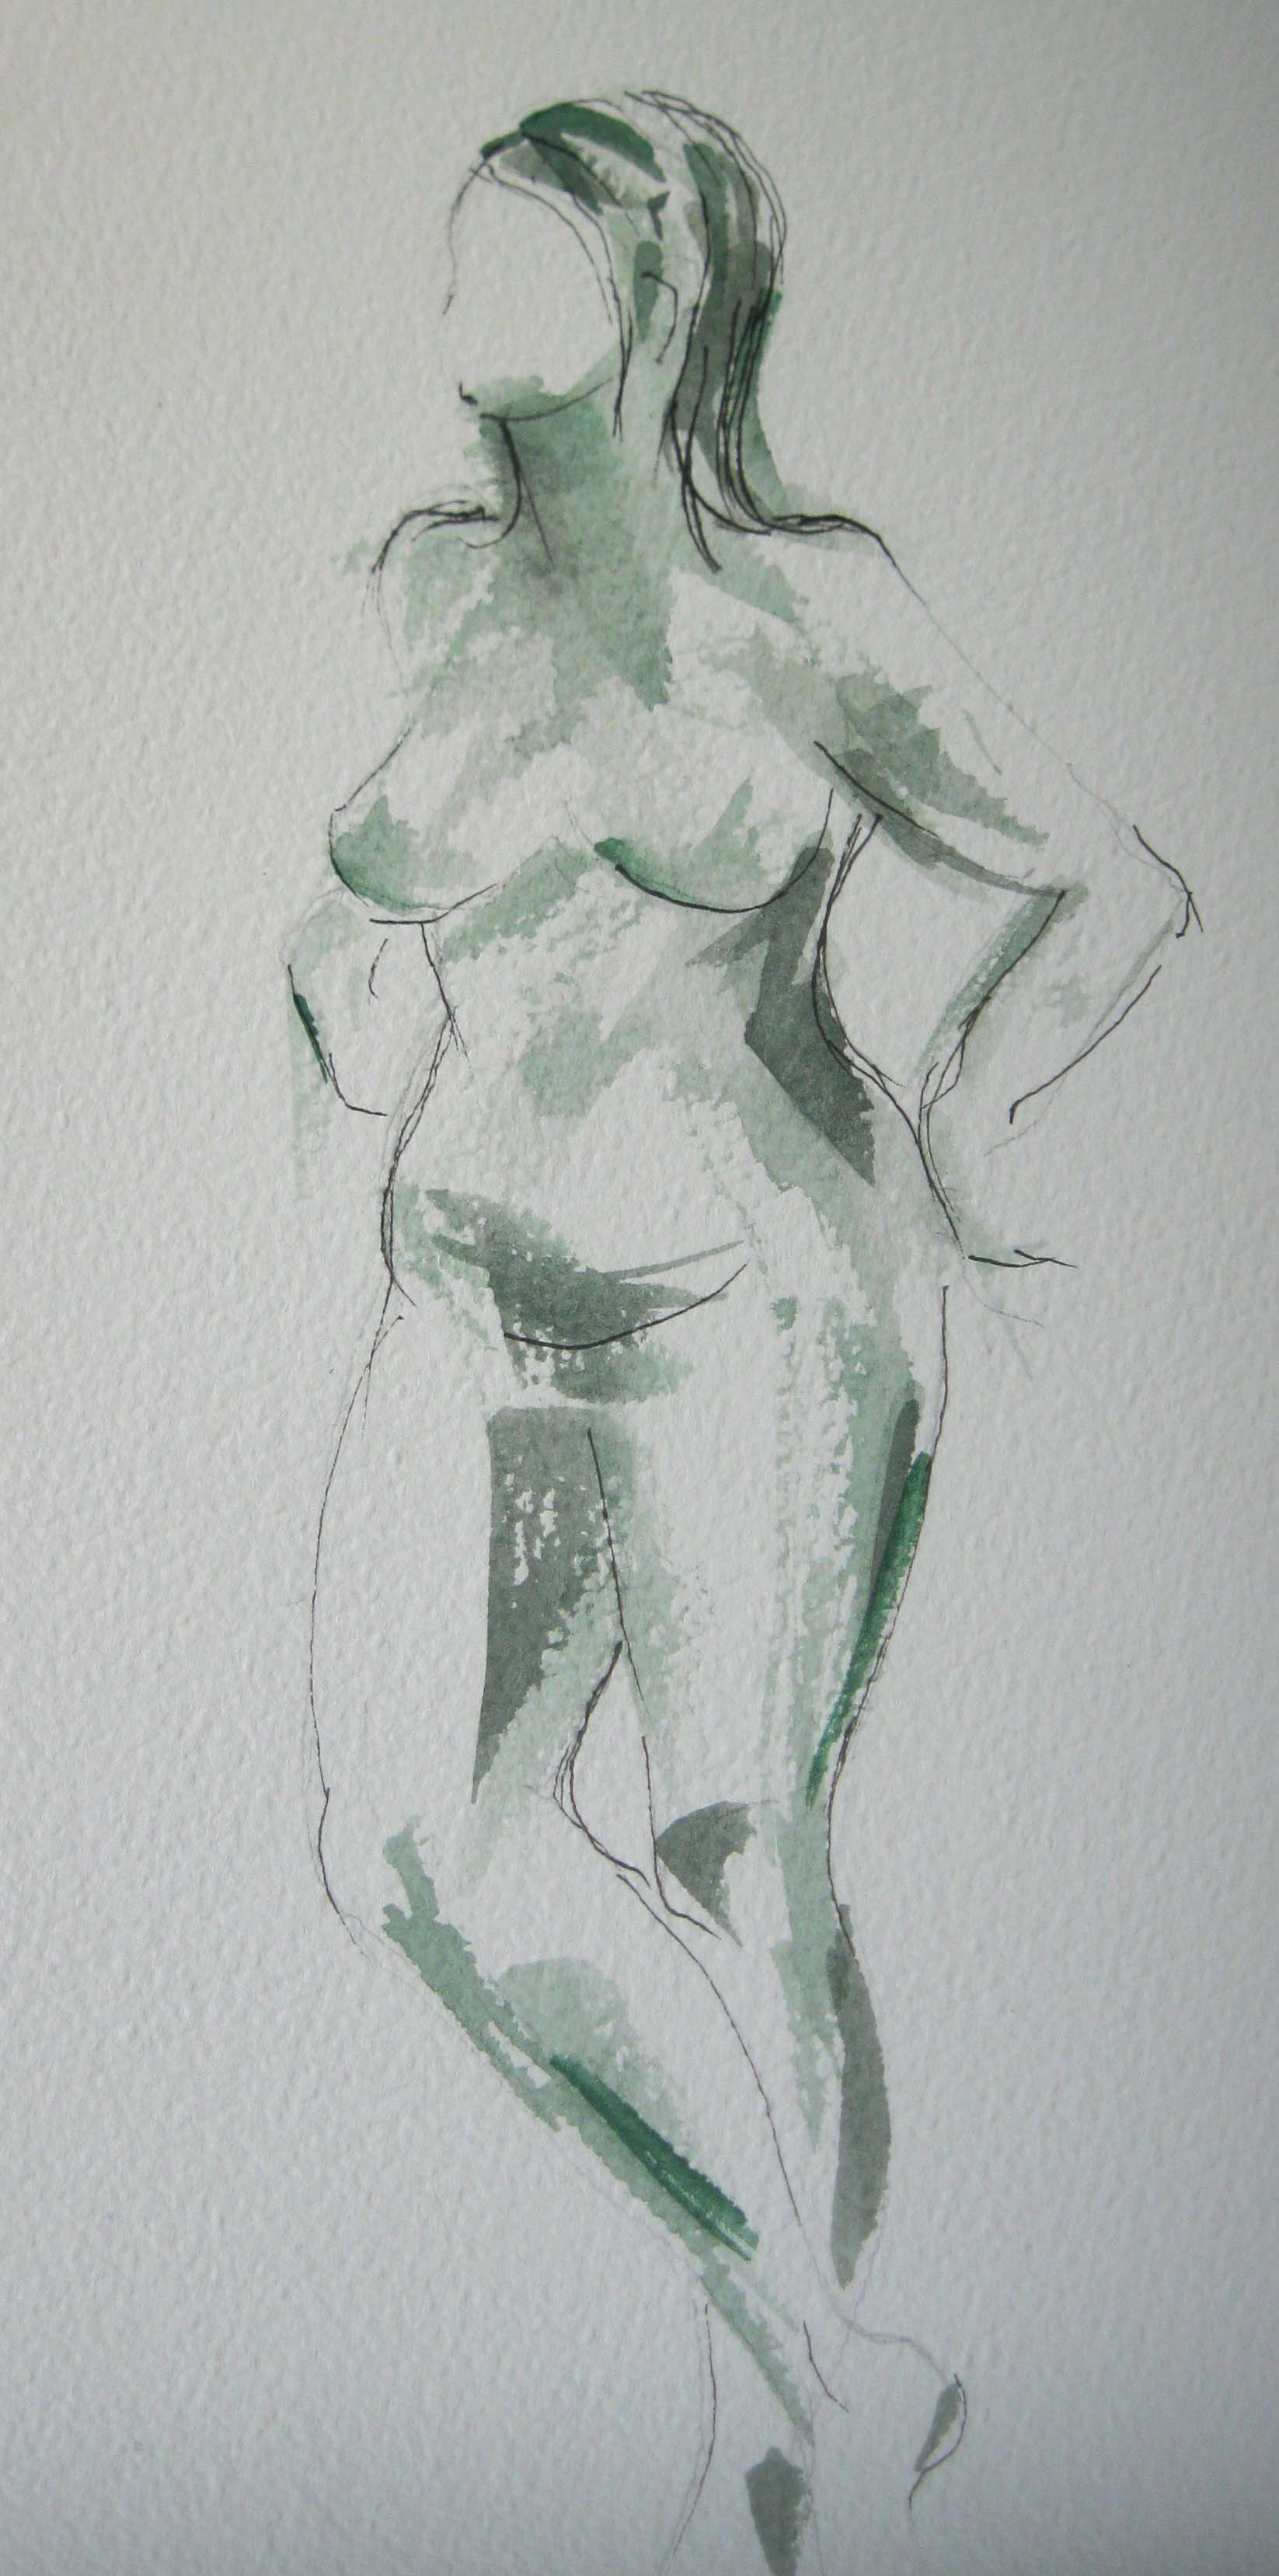 life drawing class, near me, this study of the nude figure, done in pencil at the life class in lydiate, liverpool, merseyside